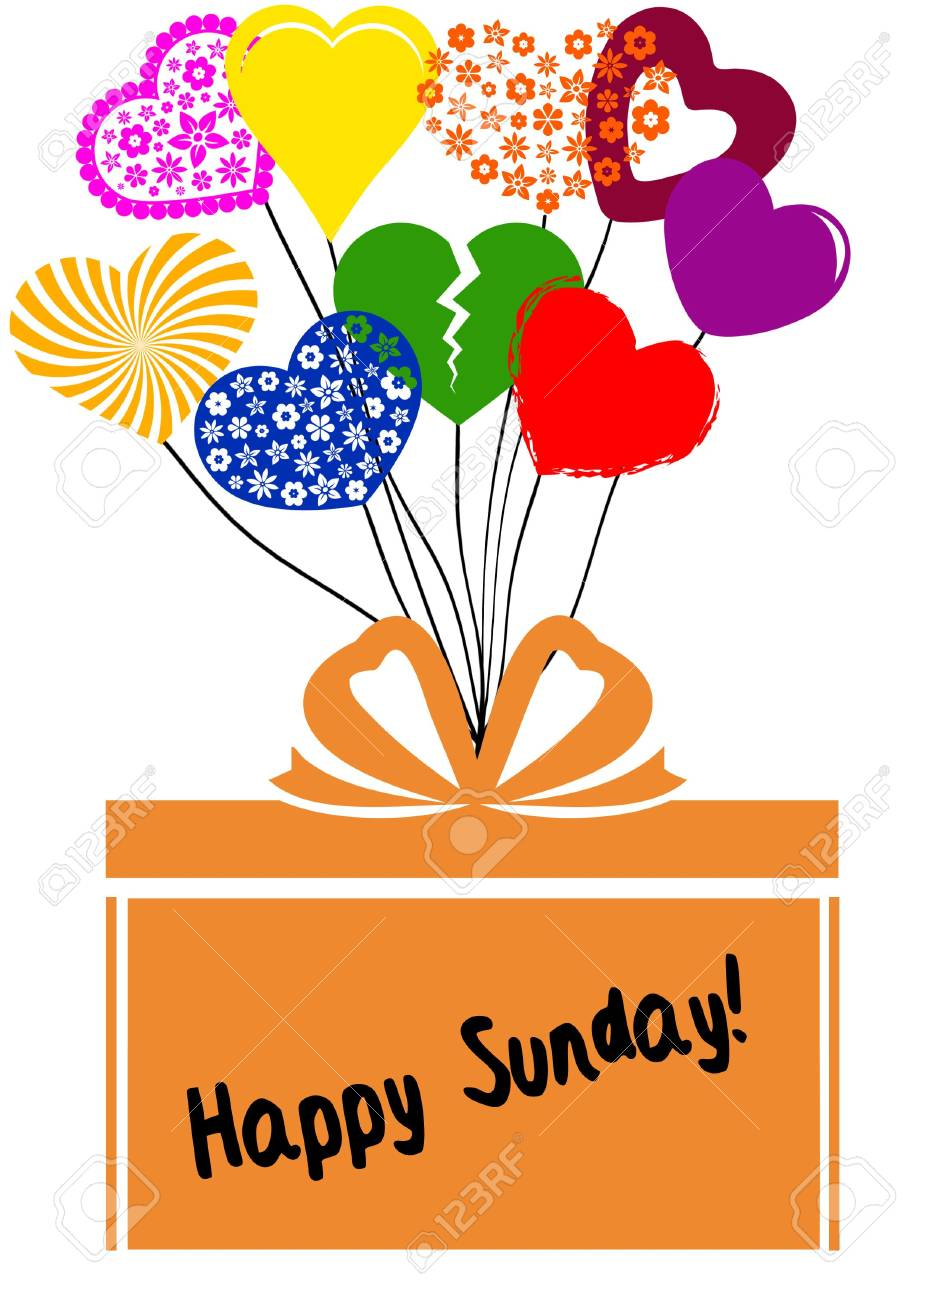 Happy Sunday On Gift Box With Multicoloured Hearts Illustration Stock Photo Picture And Royalty Free Image Image 100344815